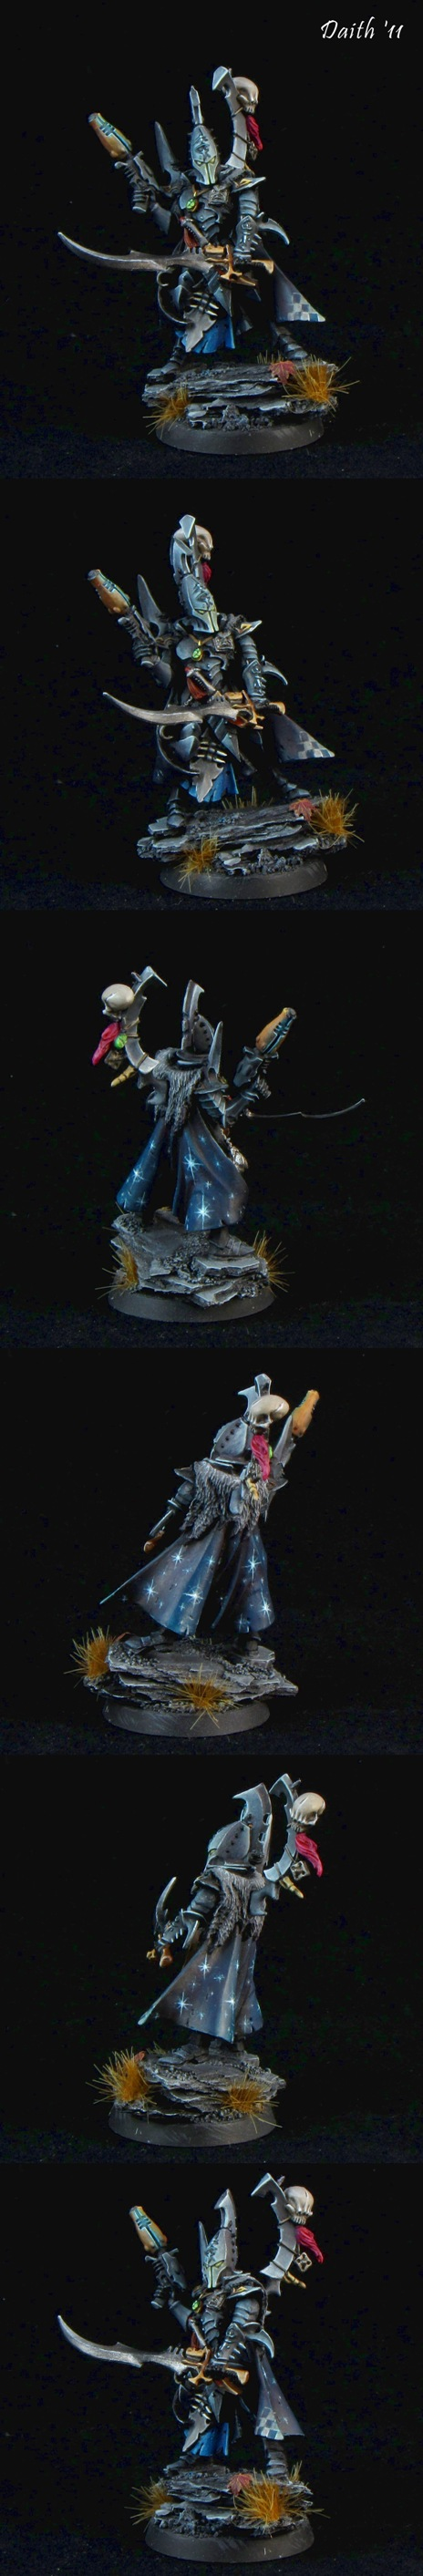 Dark Eldar Duke Sliscus the Serpent by Daith